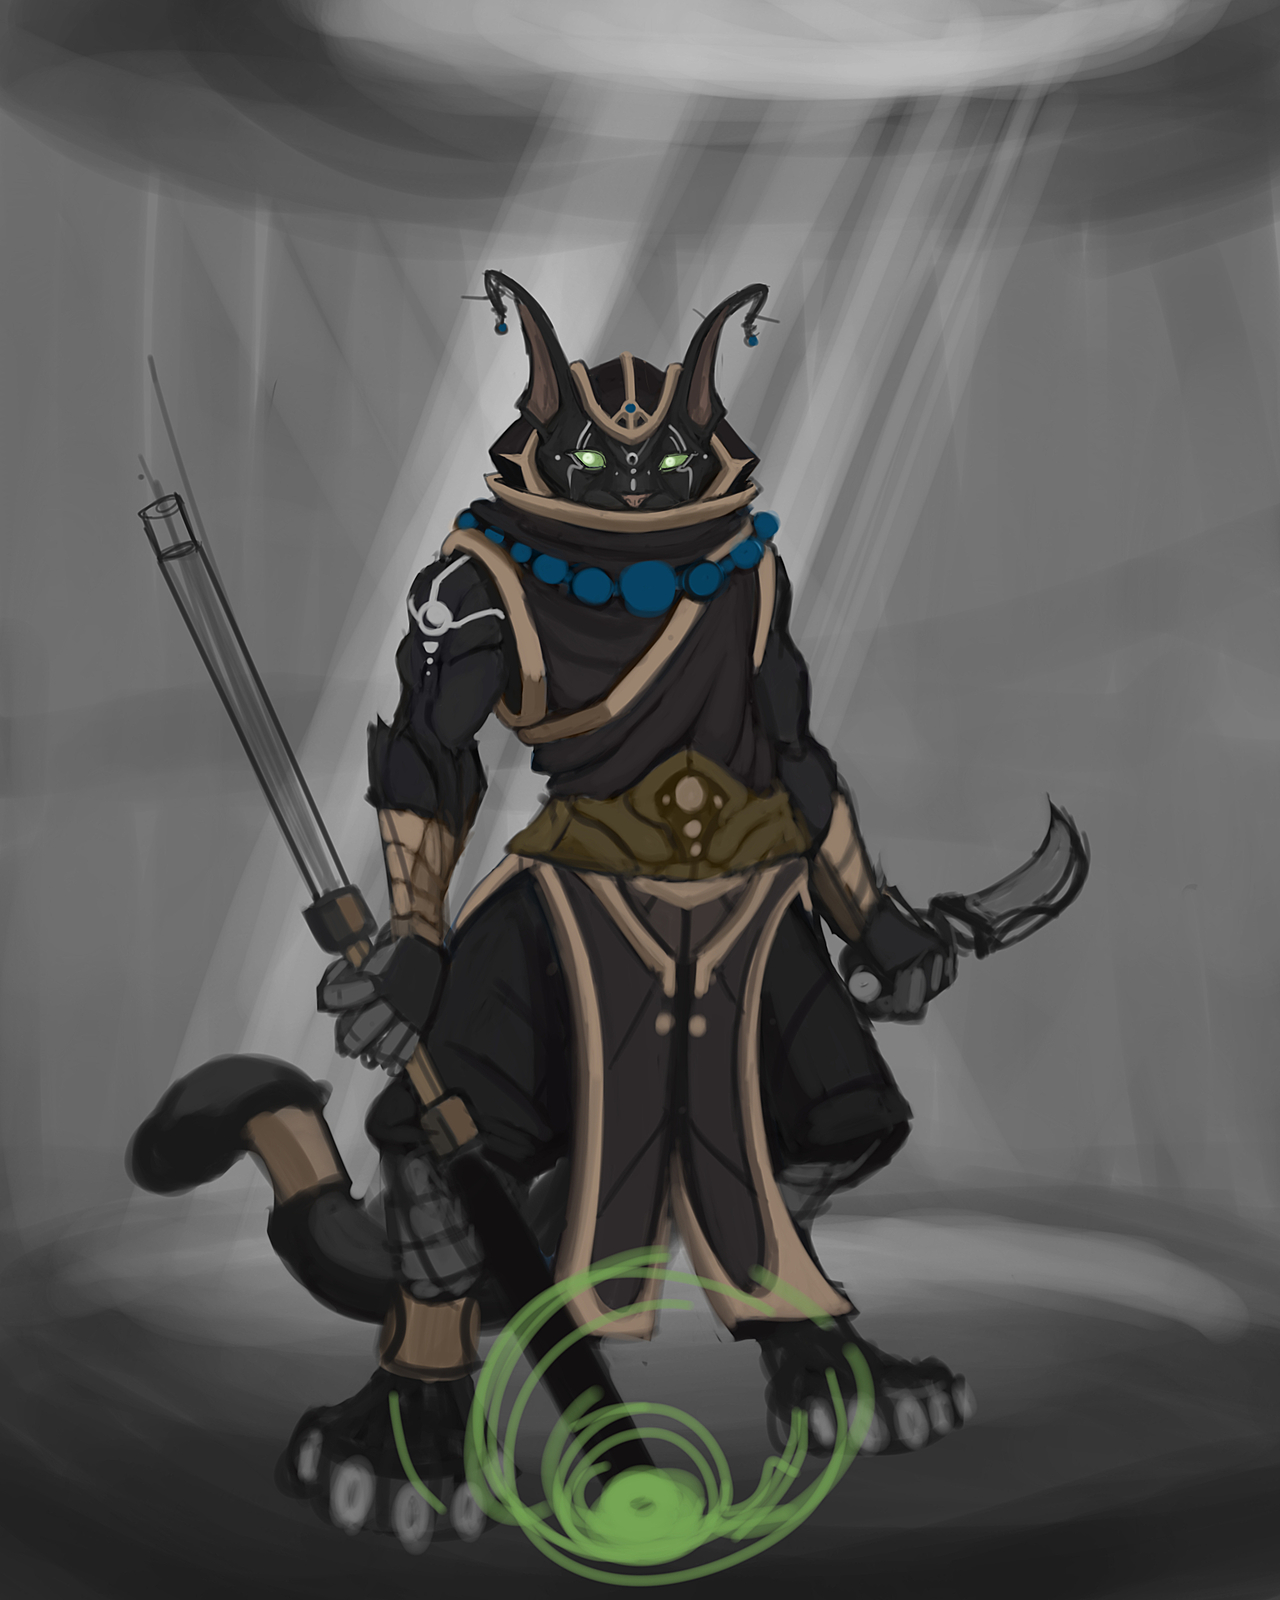 Shade D D Tabaxi Monk Cg Cookie Available in a range of colours and dnd, rpg, d d, dnd art, dungeon master, dnd classes, monk, dungeons and dragons, d and d, roleplay, role dungeons and dragons, dnd, tabaxi, monk, tabaxi monk, neon, dr smash. shade d d tabaxi monk cg cookie